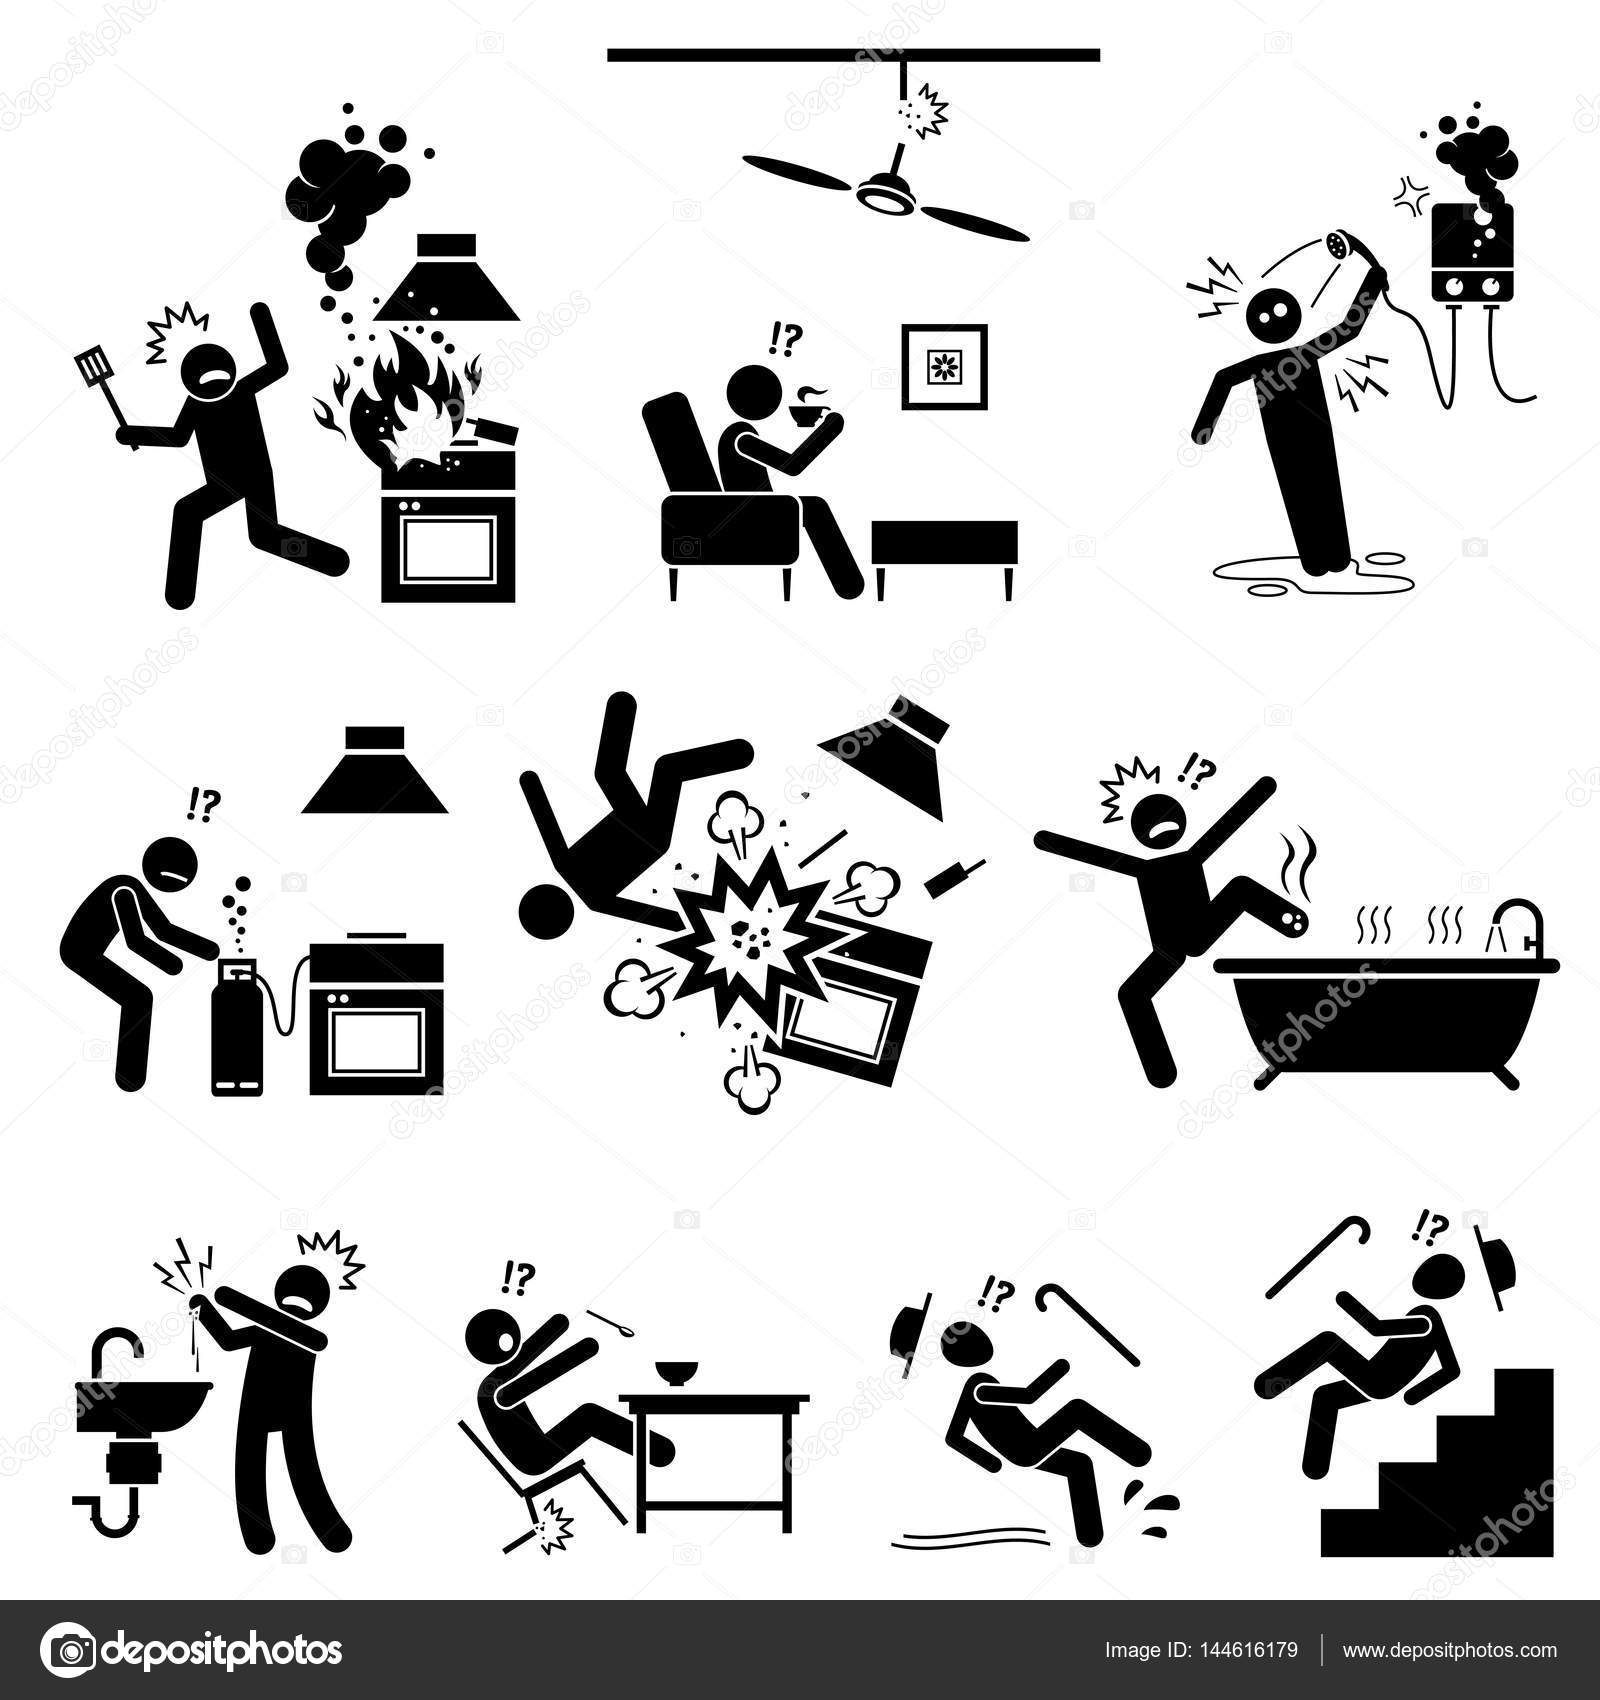 Stock Illustration Safety Hazard At Home likewise 8804 Bed For A Girl Coloring Page moreover Stock Illustration Black And White Cartoon Bathroom as well Print Mantras Pvc Wall Stickers Beautiful Black Krishna With Flute Size 10575 1500582 further Wall Decal Tree Silhouette With Olives Xml 420 256 3341 12181. on bathroom clipart black and white